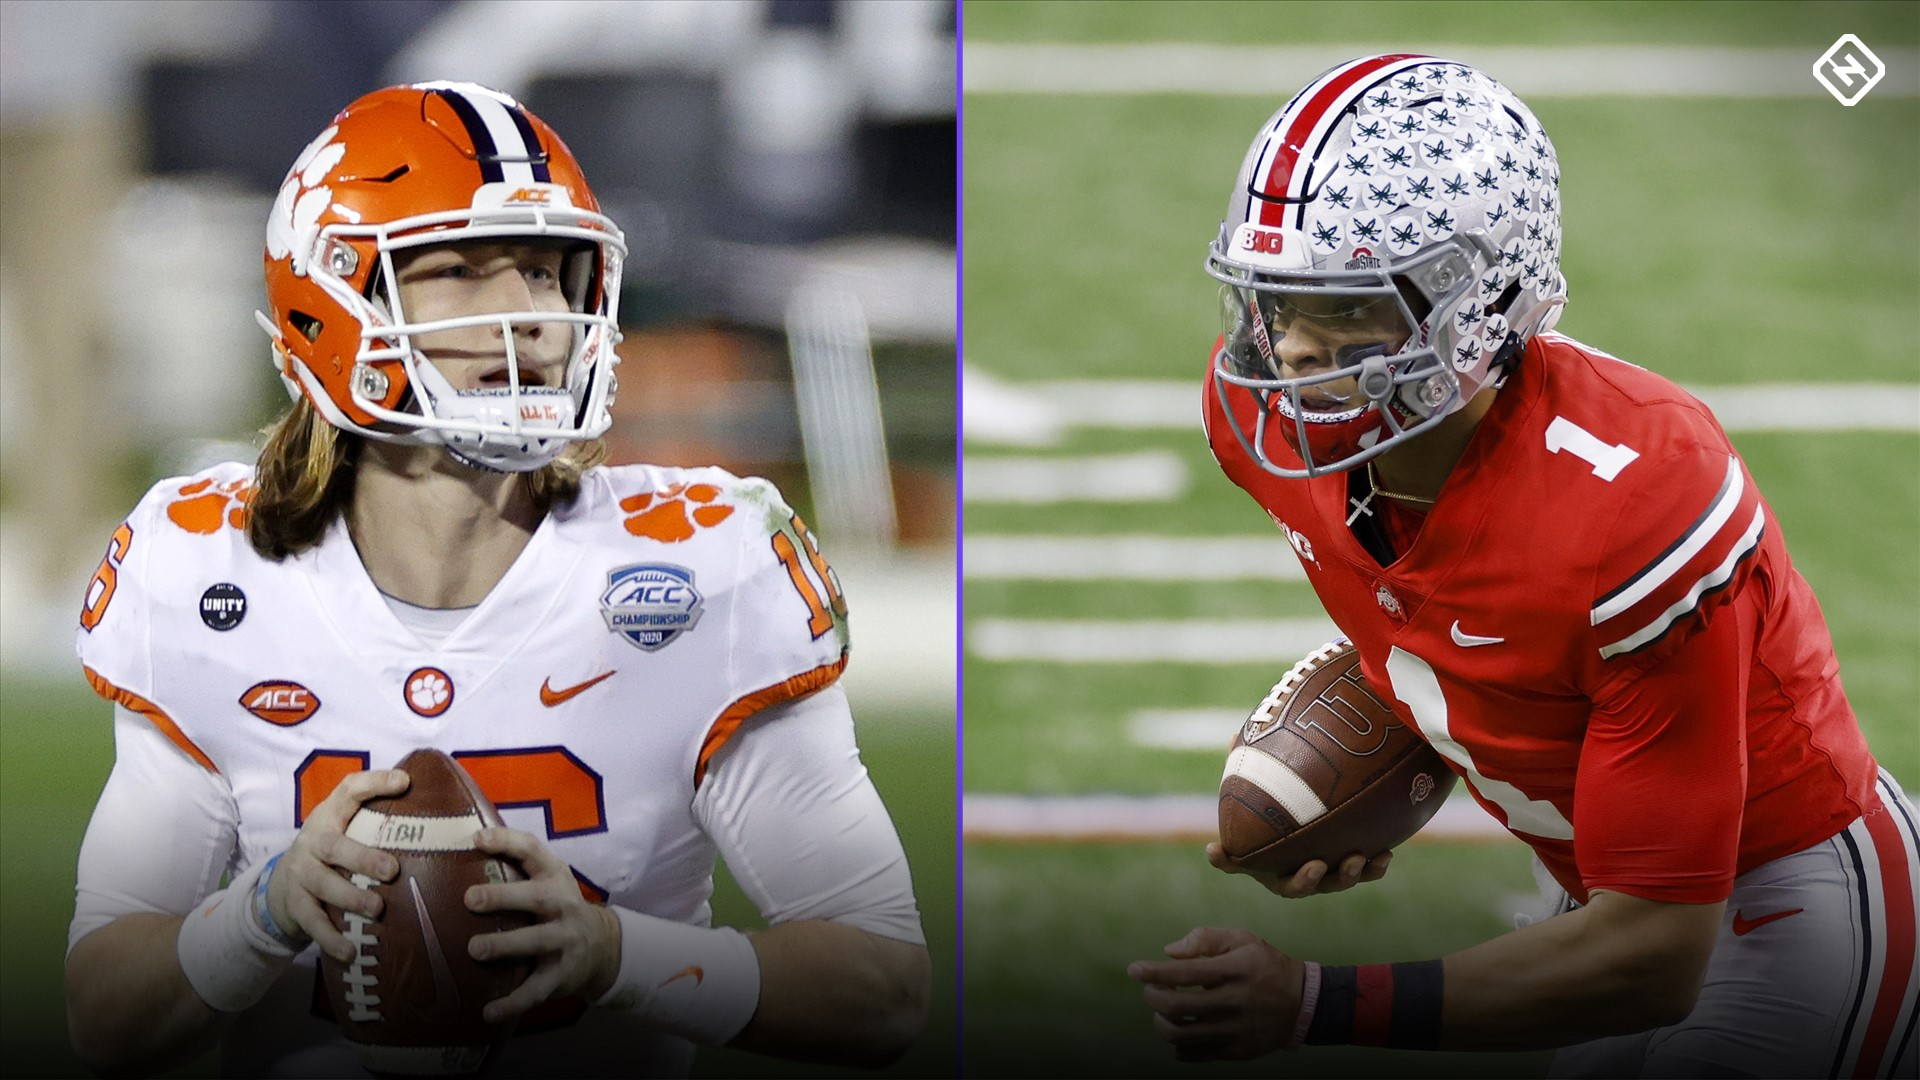 NFL Mock Drafts 2021: Compare news from Mel Kiper, Daniel Jeremiah, Todd McShay and other experts